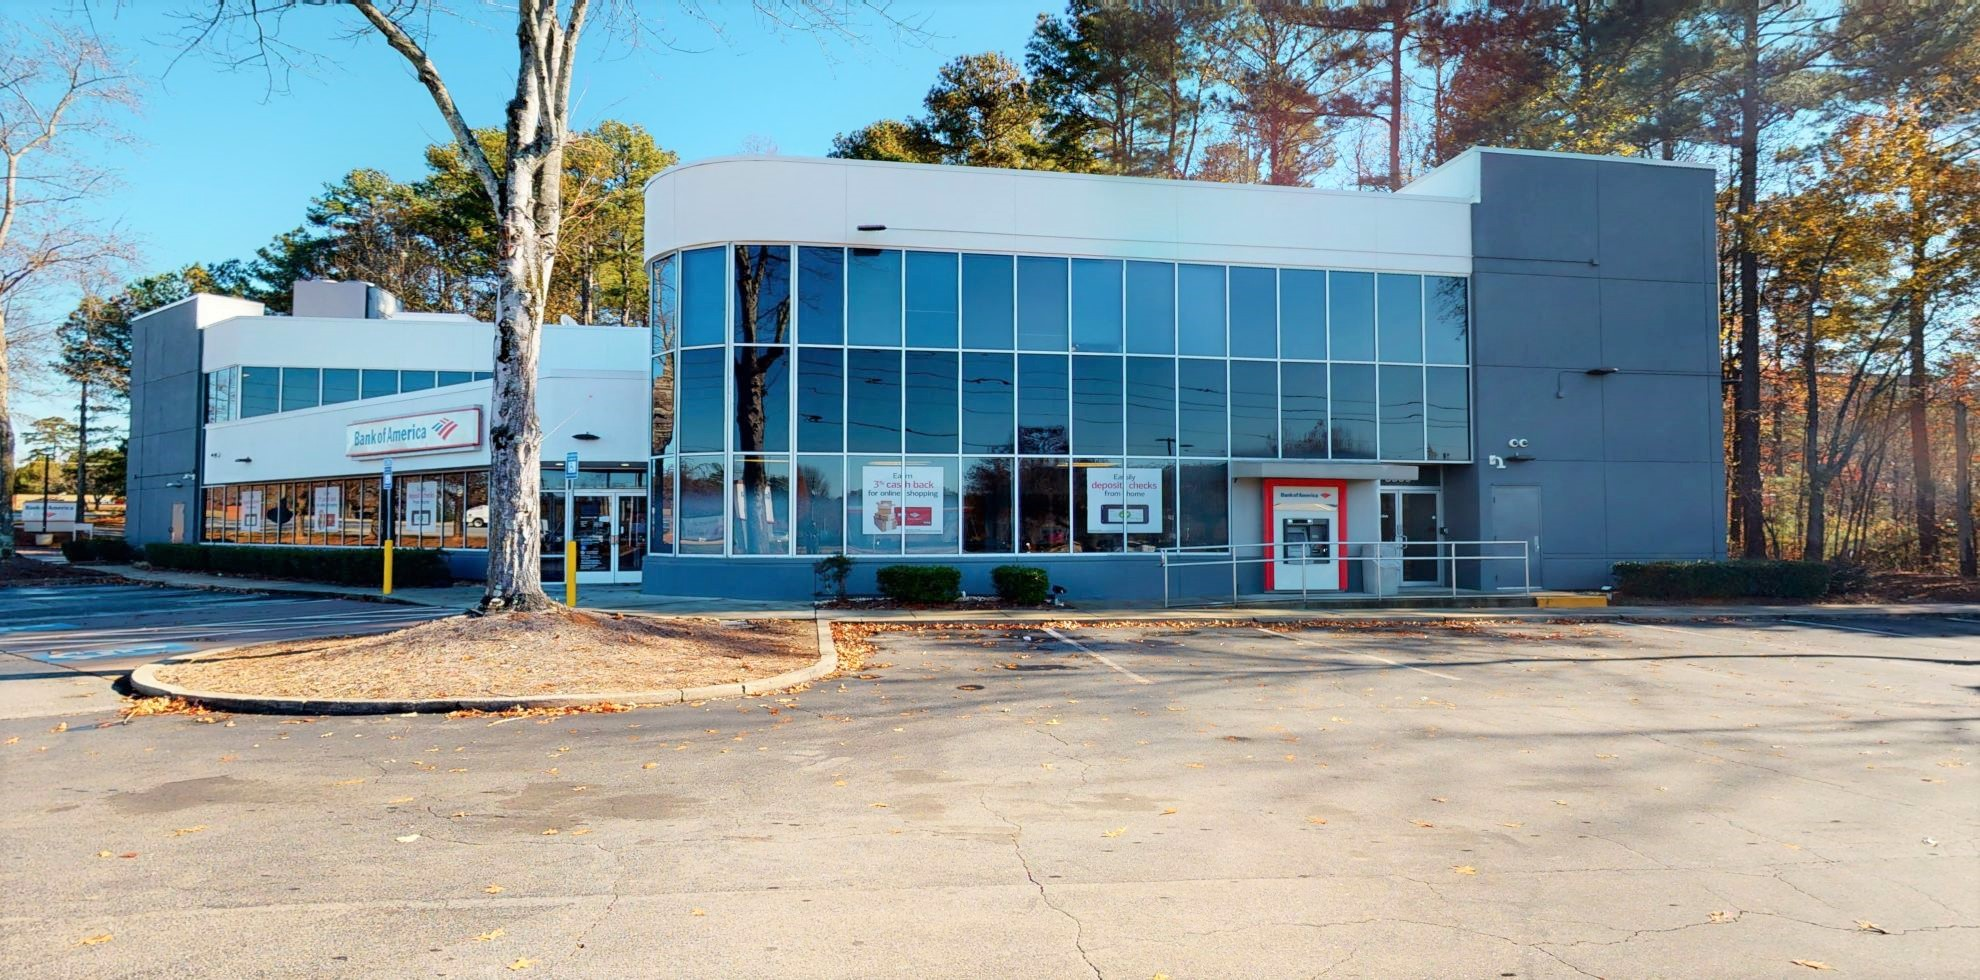 Bank of America financial center with drive-thru ATM | 5500 Peachtree Pkwy, Norcross, GA 30092